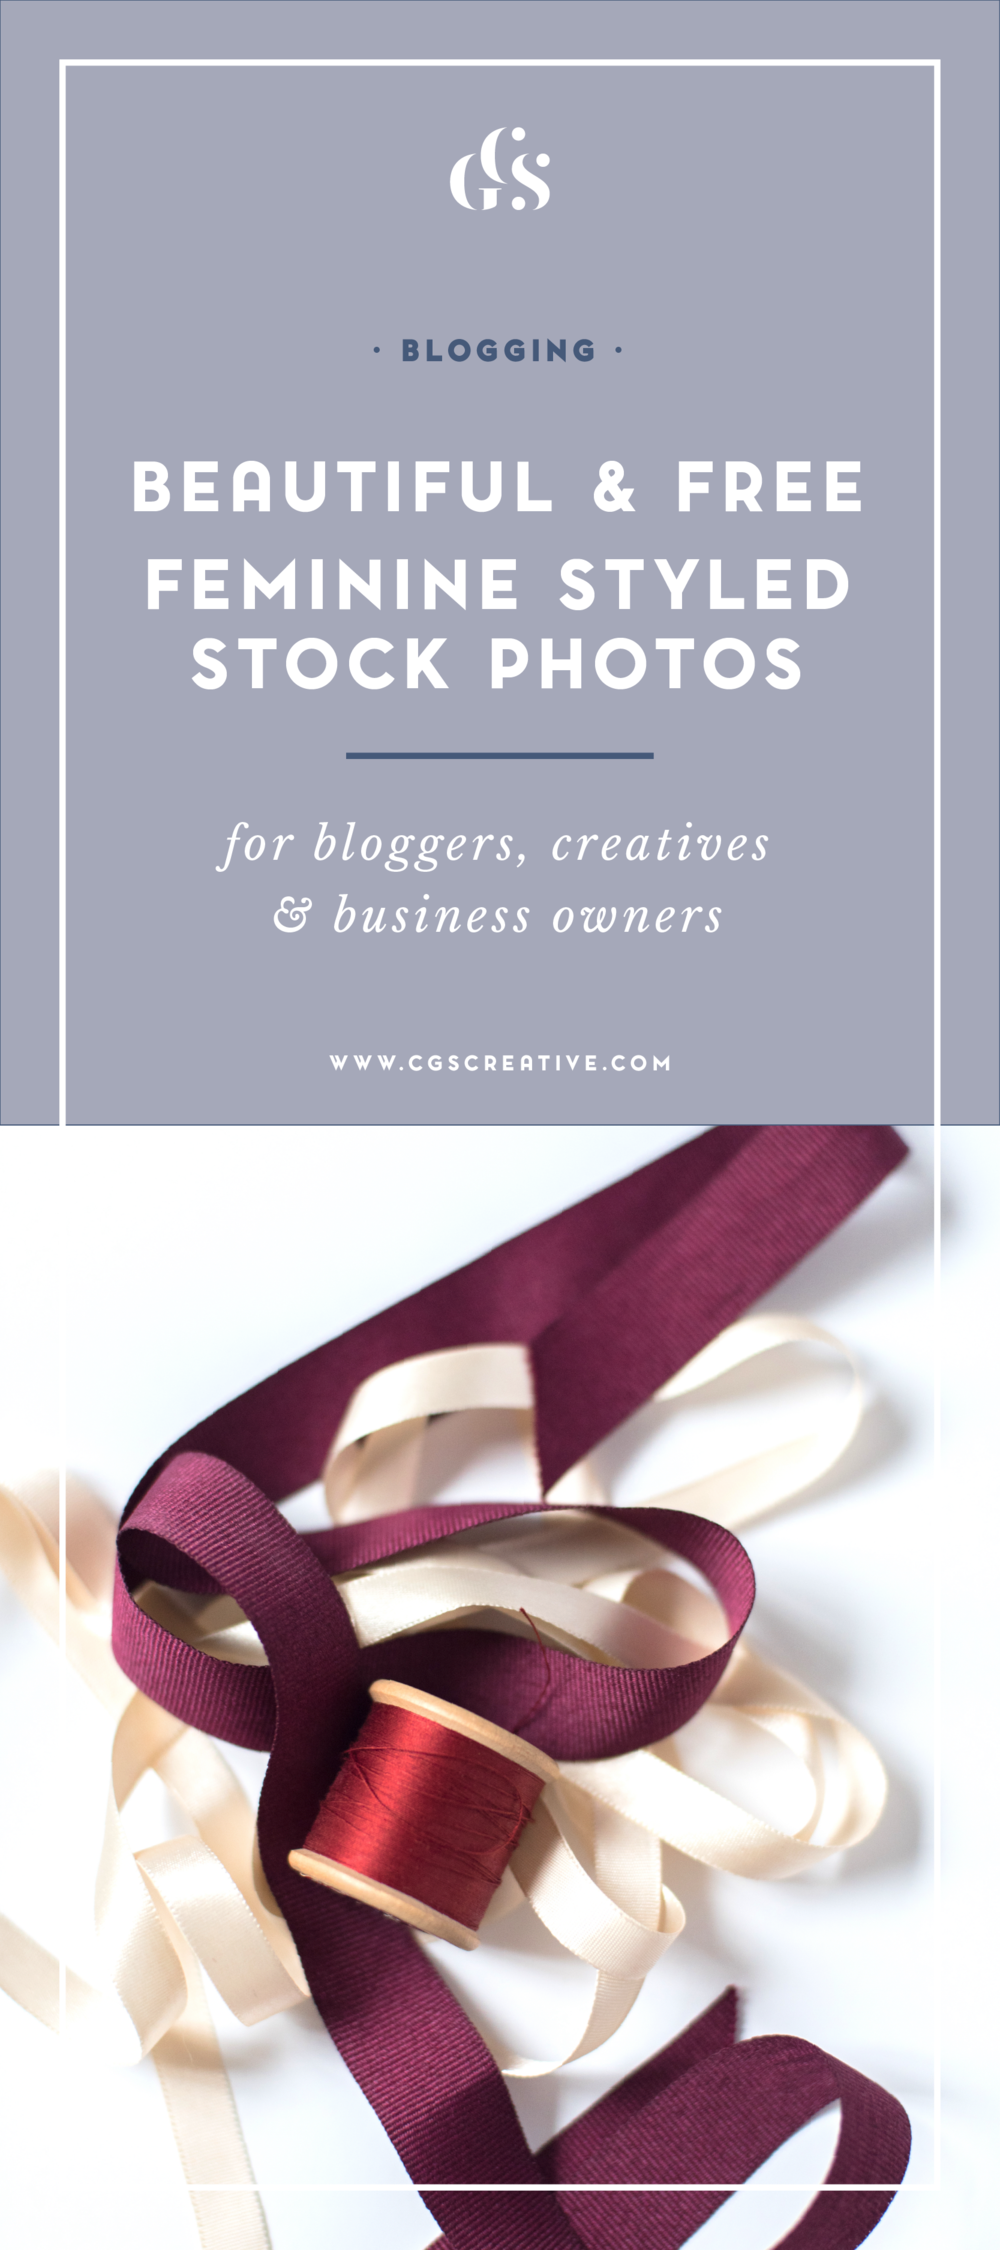 Unique & Feminine Stock Photos for Bloggers, Creatives & Business Owners